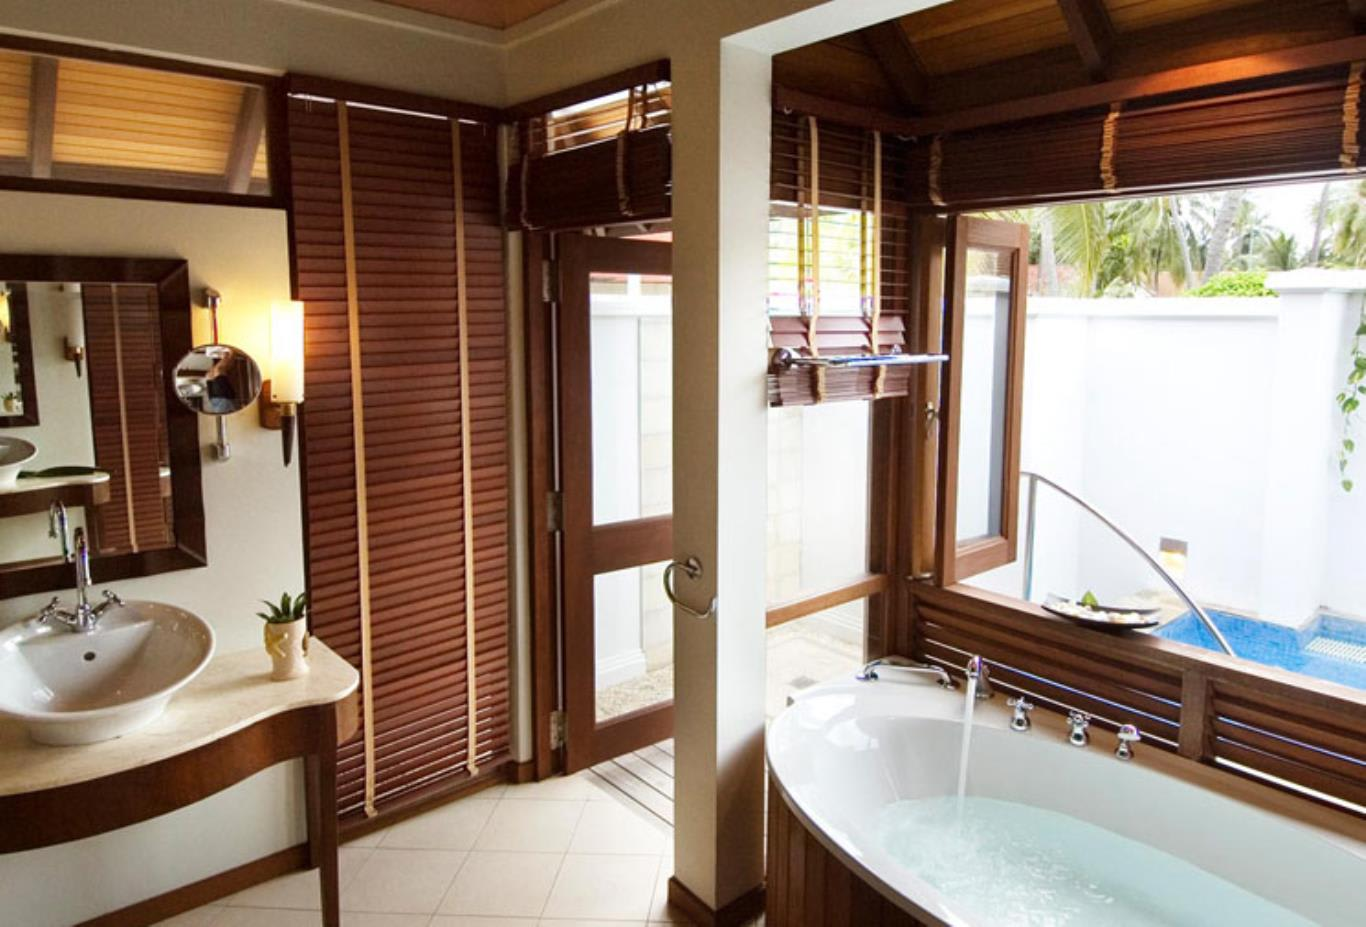 Beach Villa with Jacuzzi bathroom